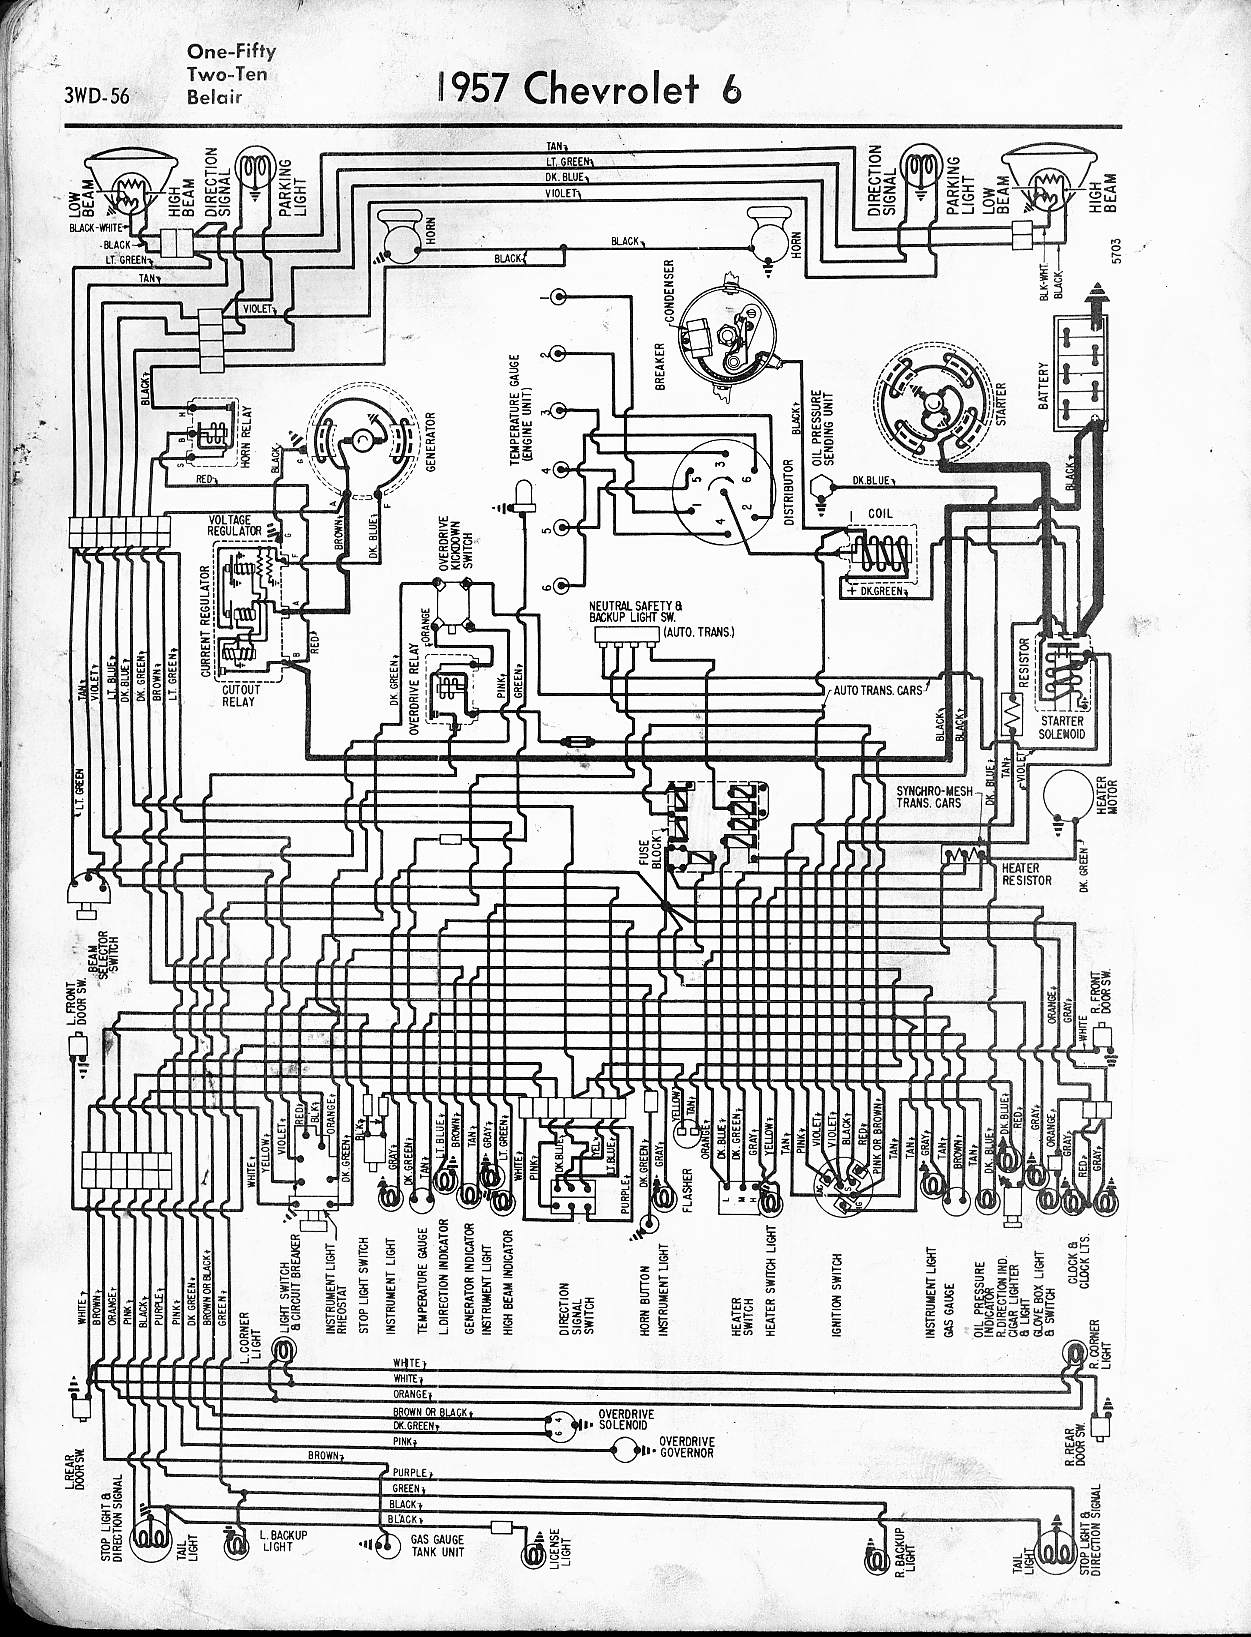 MWireChev57_3WD 056 57 65 chevy wiring diagrams 1957 chevy bel air wiring harness at mifinder.co